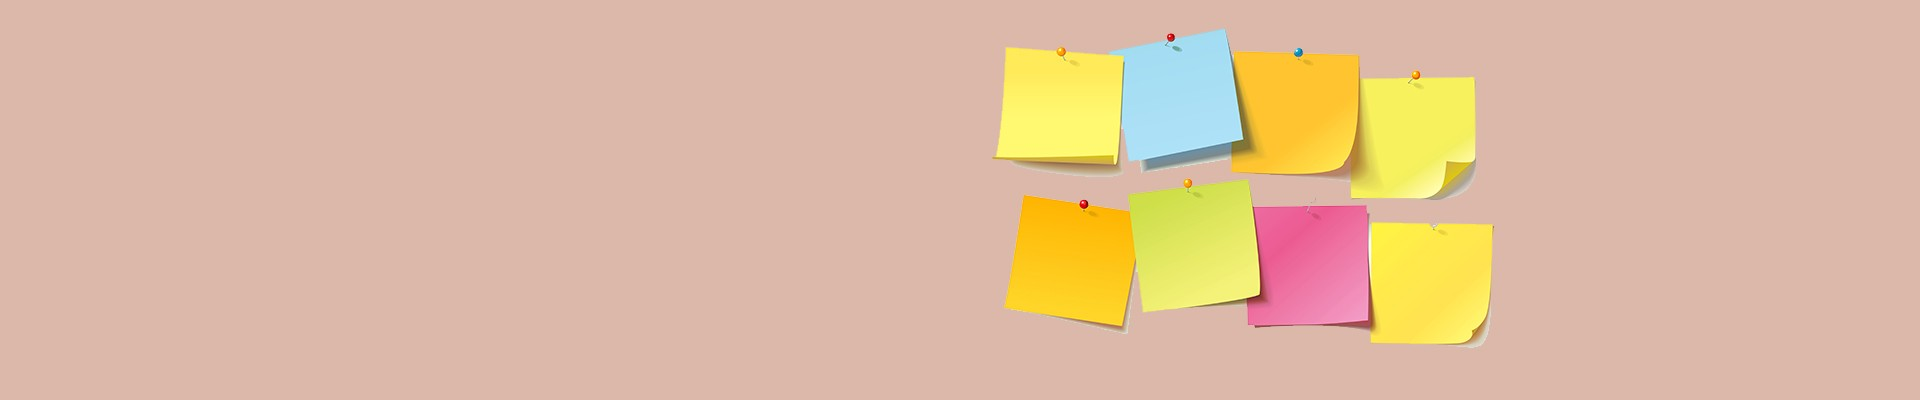 Jual Memo Post-It & Sticky Notes